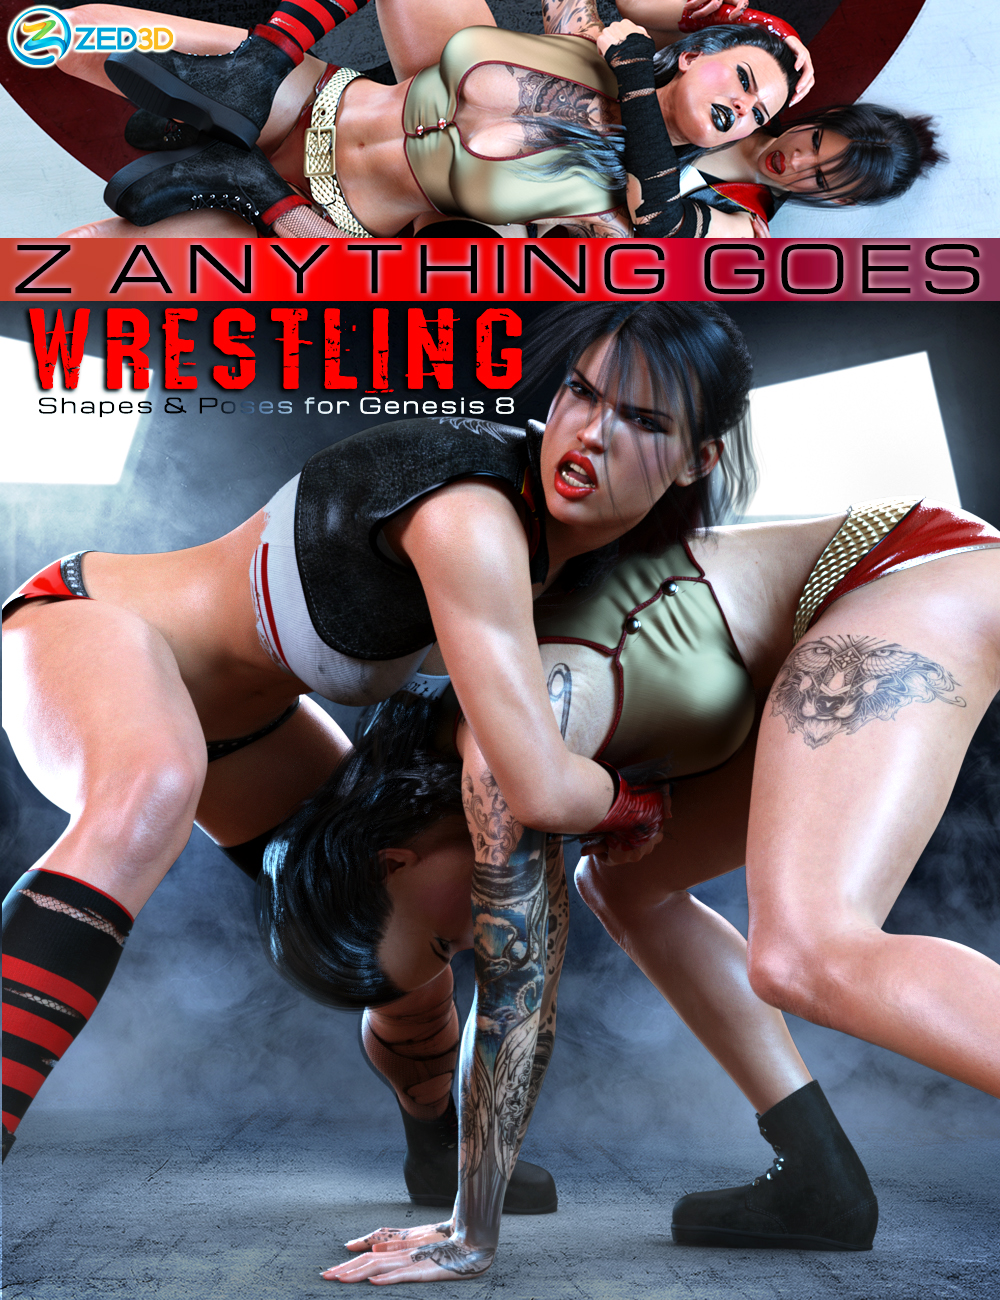 Z Anything Goes Wrestling Shapes and Poses for Genesis 8 by: Zeddicuss, 3D Models by Daz 3D